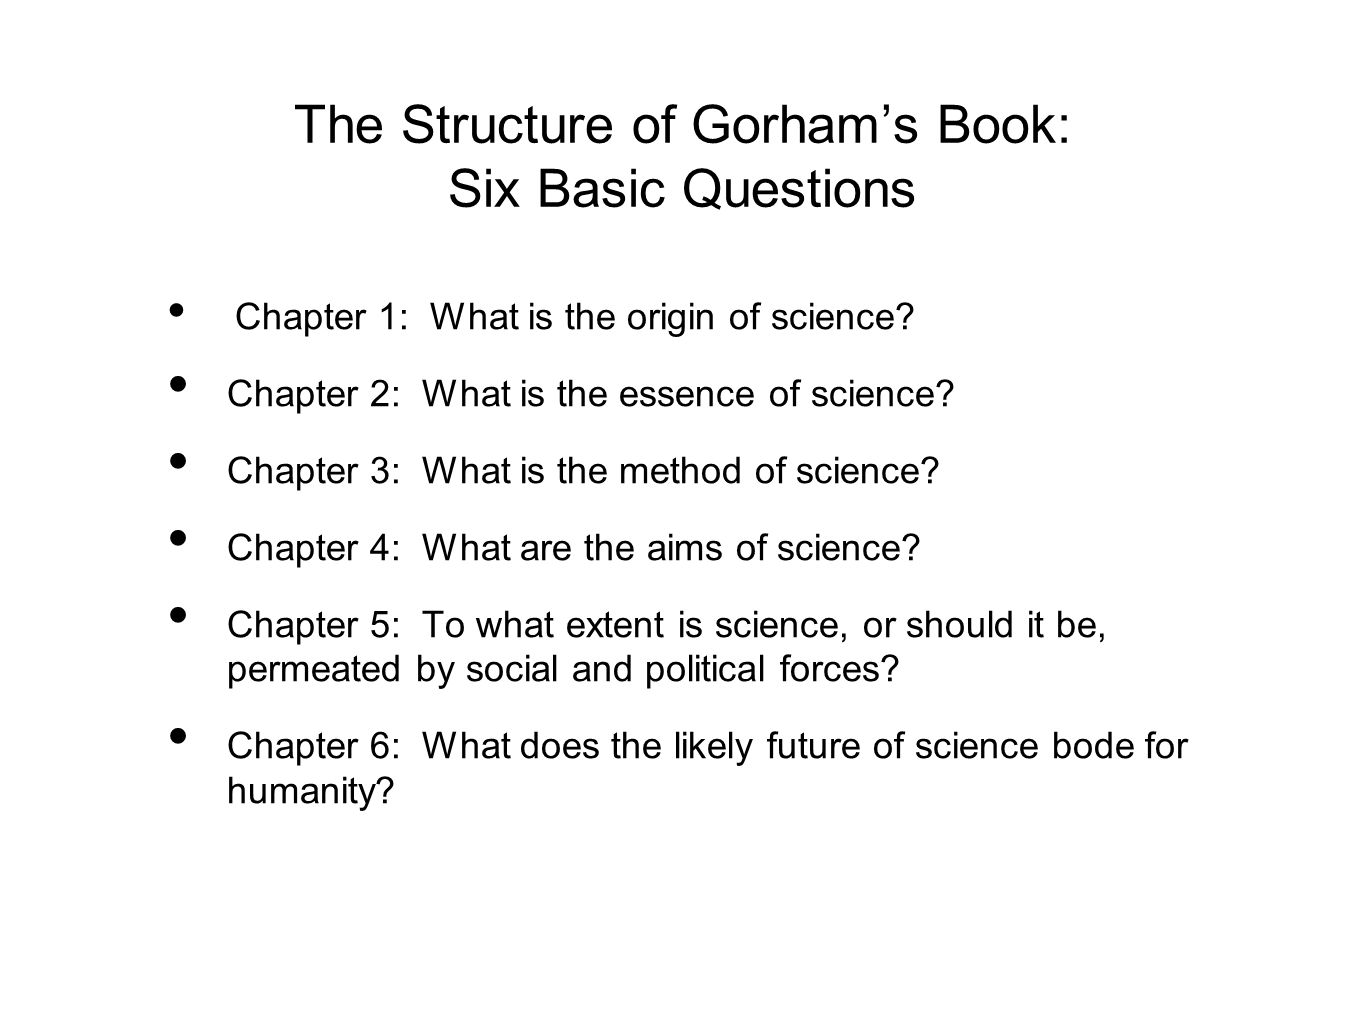 The Structure of Gorham's Book: Six Basic Questions Chapter 1: What is the origin of science? Chapter 2: What is the essence of science? Chapter 3: Wh